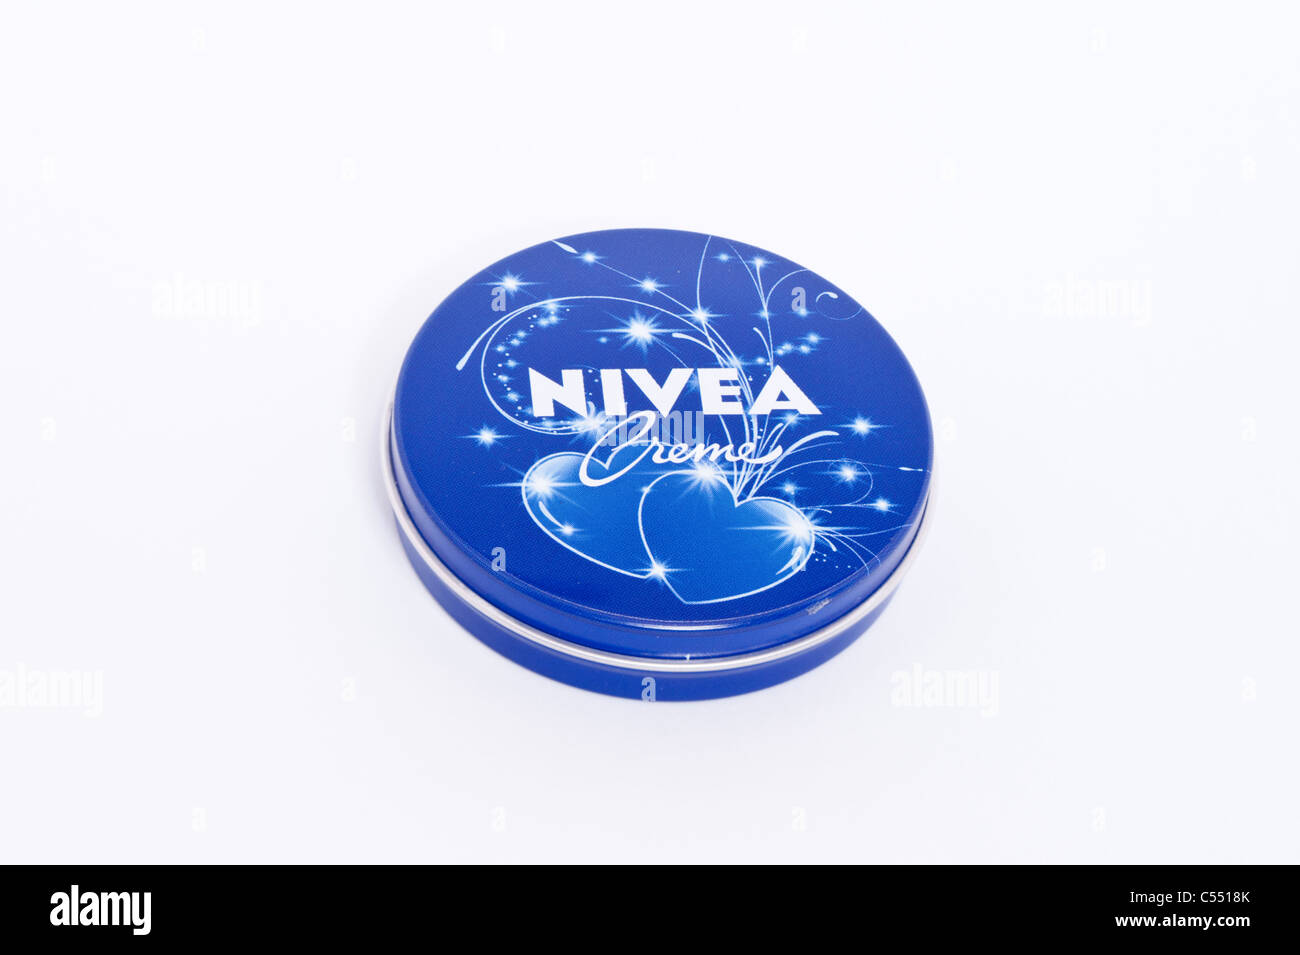 A tin of Nivea moisturising creme on a white background - Stock Image